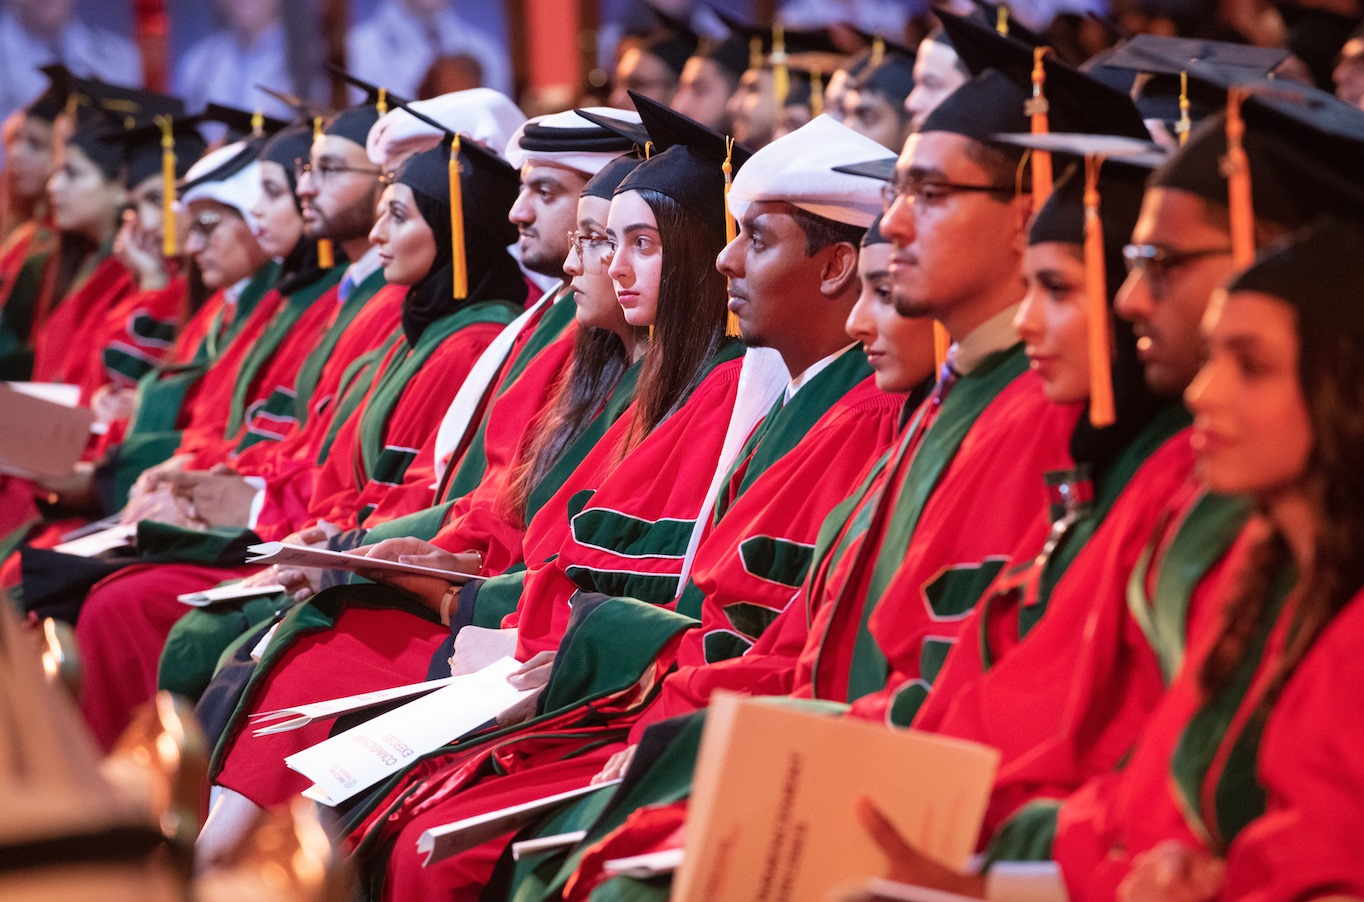 Are U.S. Branch Campuses Paying Off for Gulf States? Study Says No